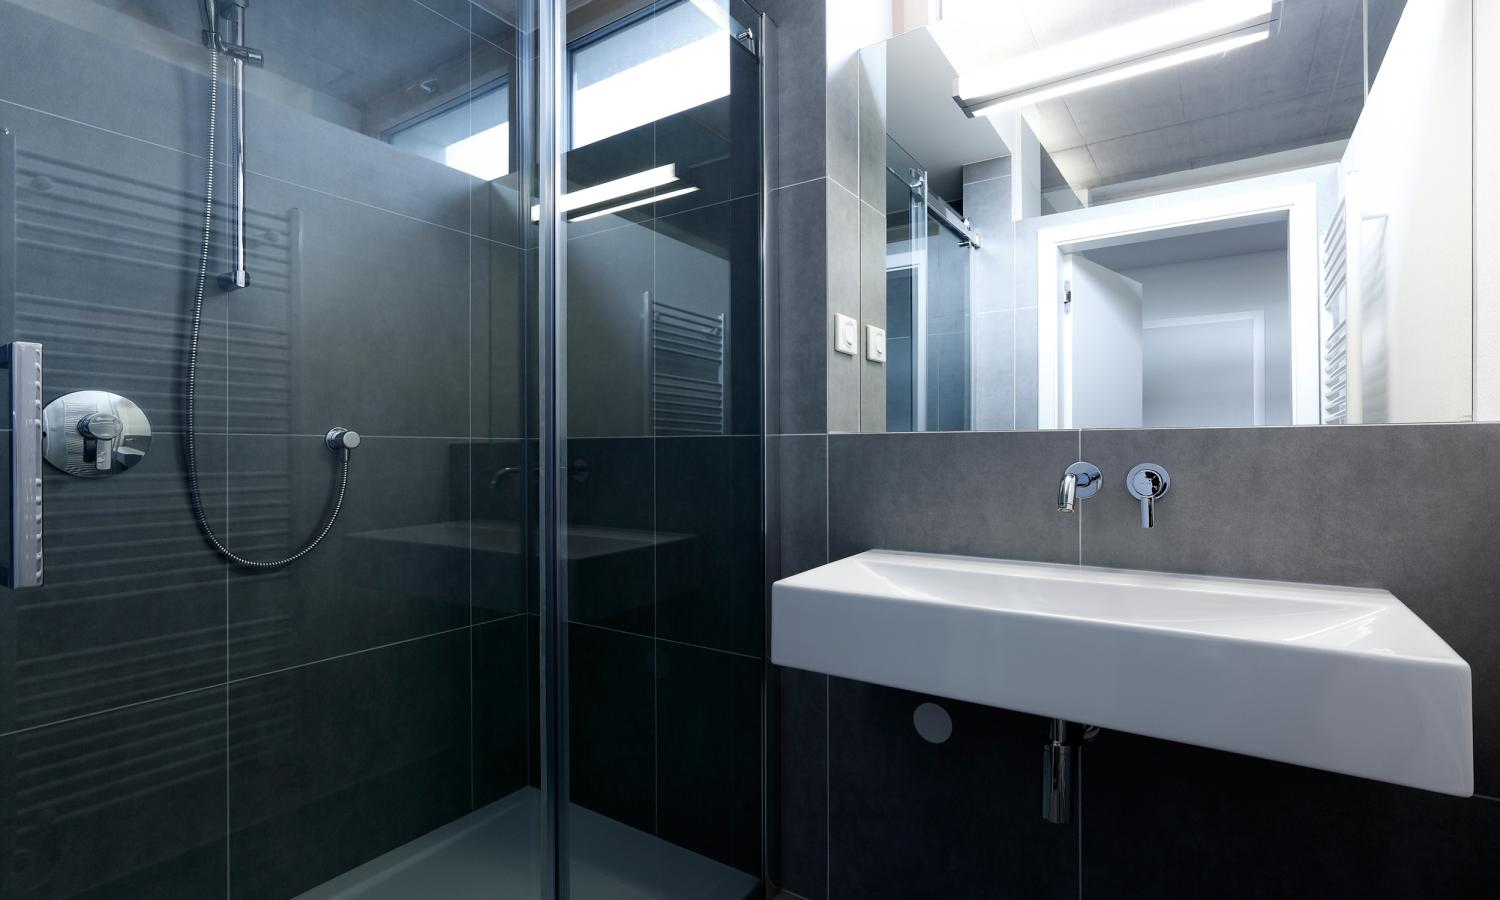 Big Glass Shower - Indoor plant inspiration to transform your space